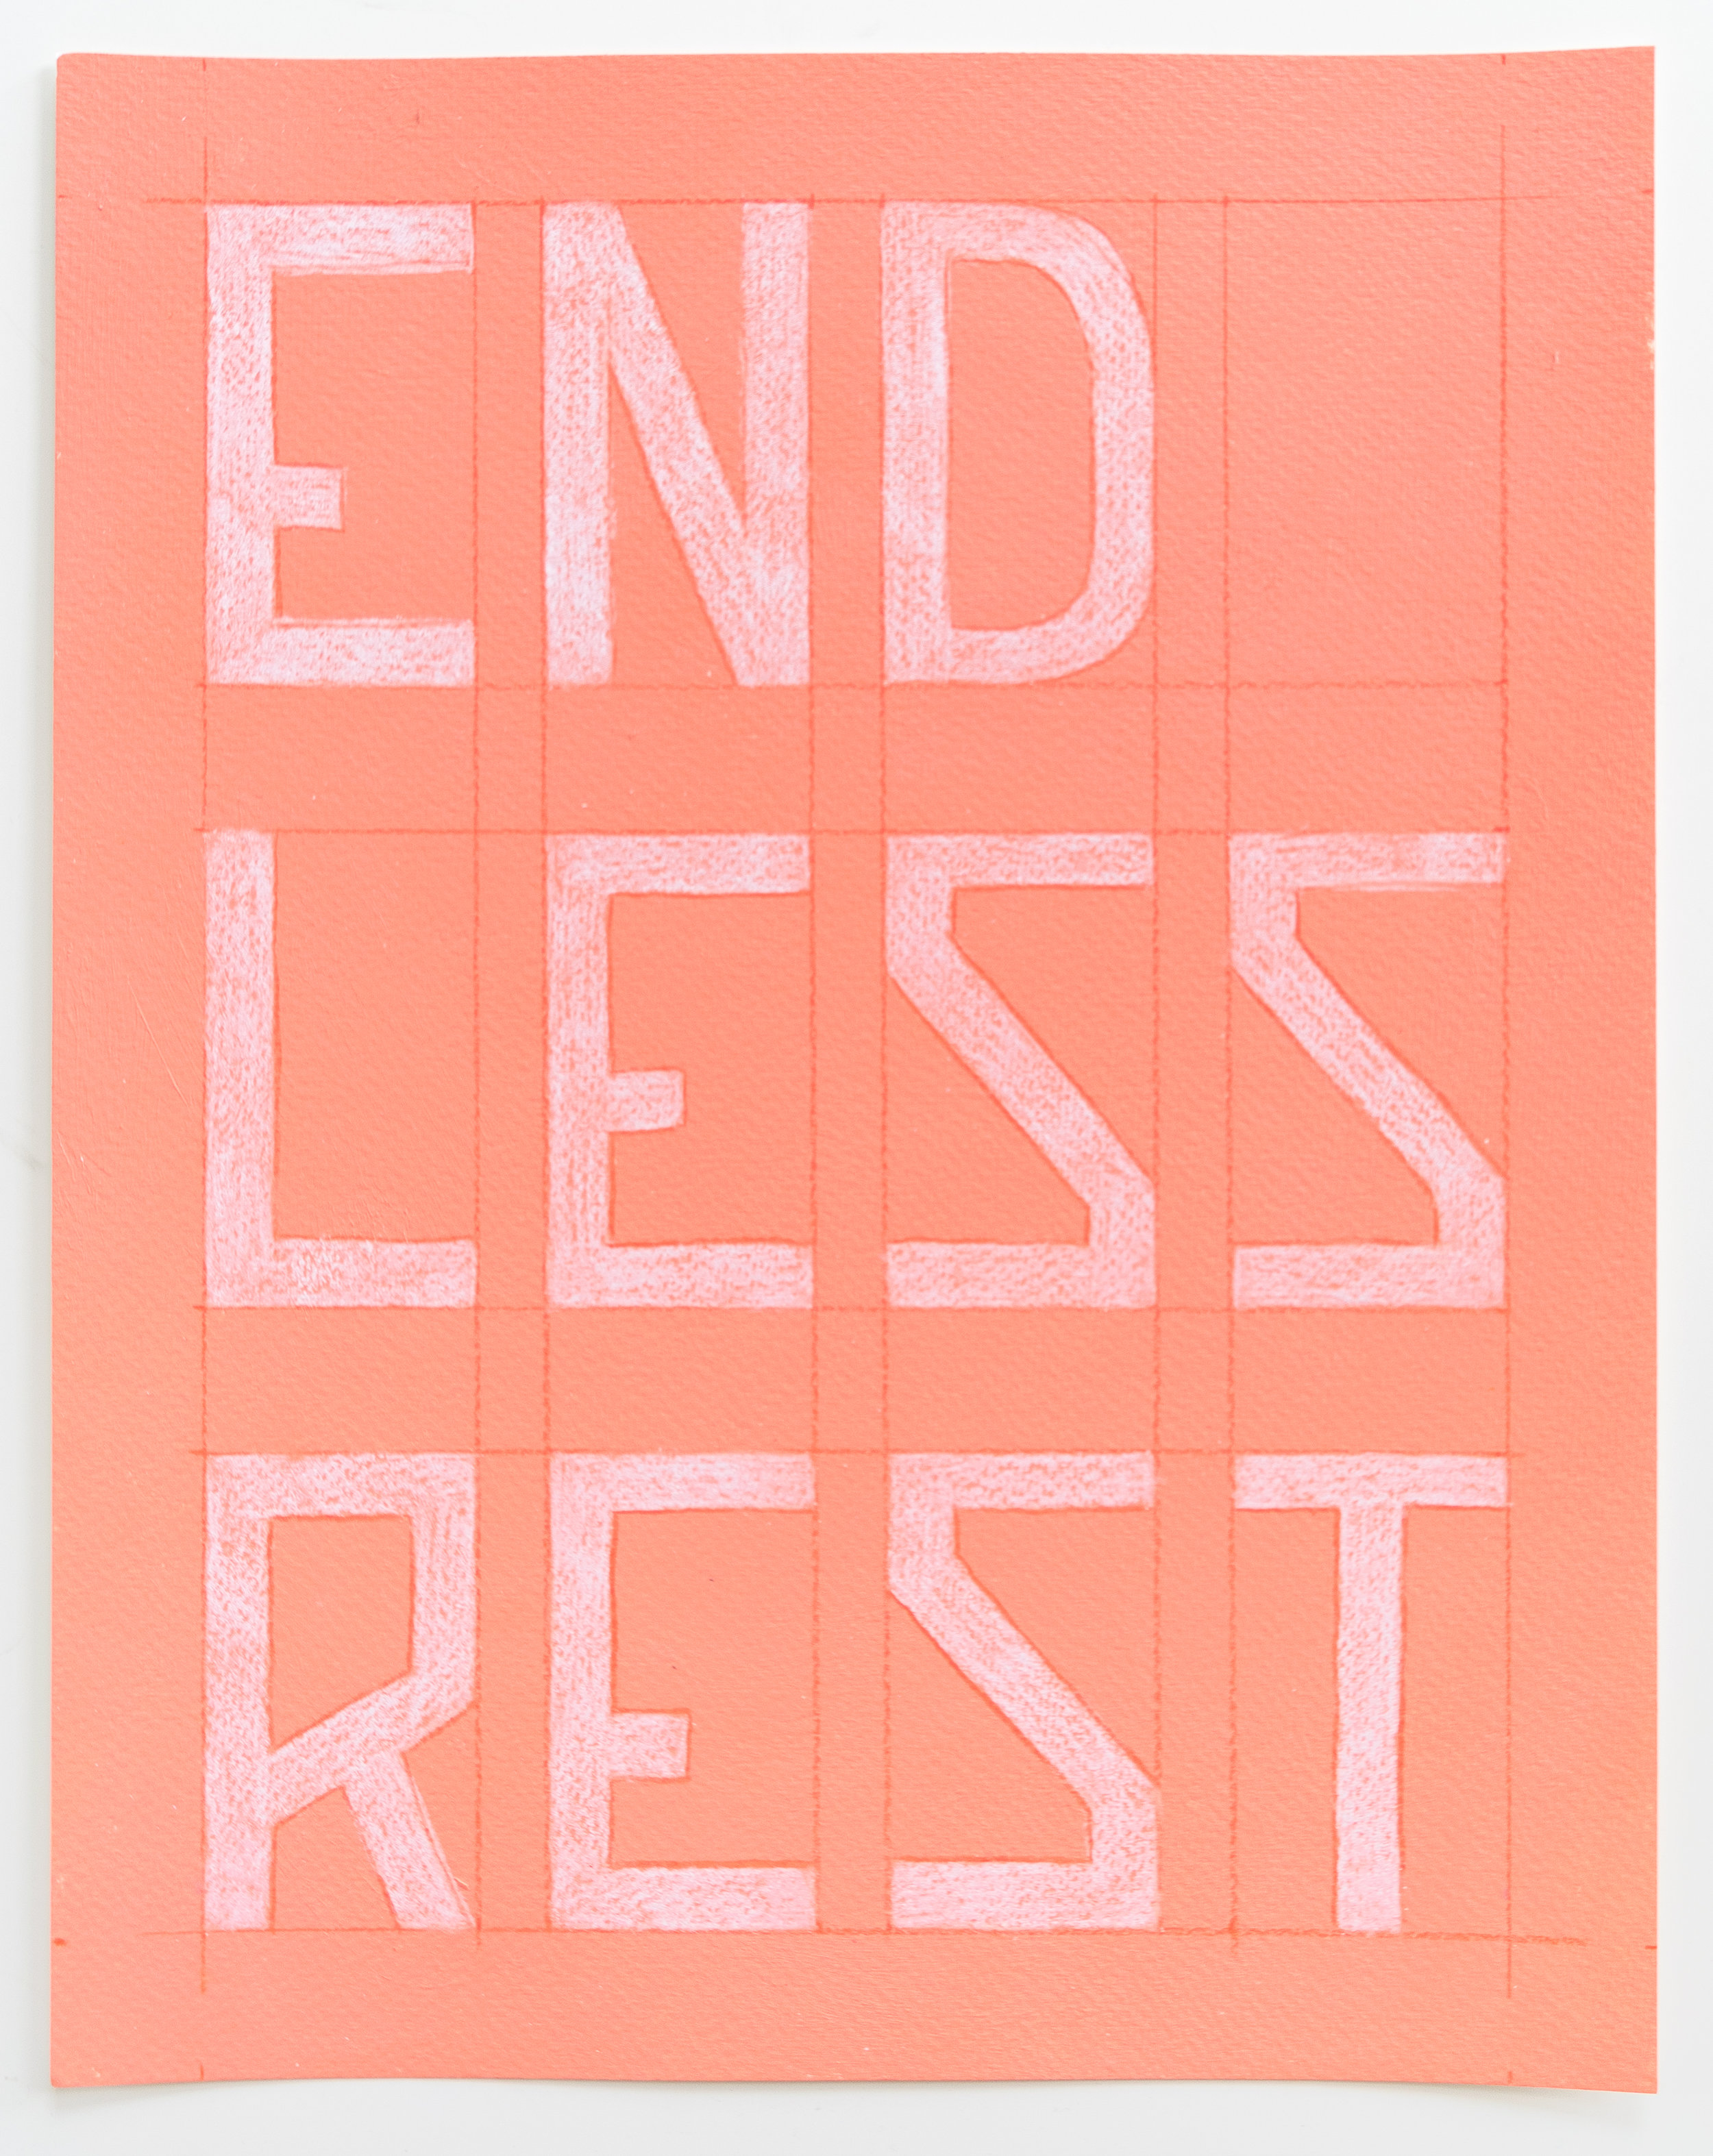 Endless Rest  Enamel, colored pencil, watercolor paper  11 x 14 inches  2017